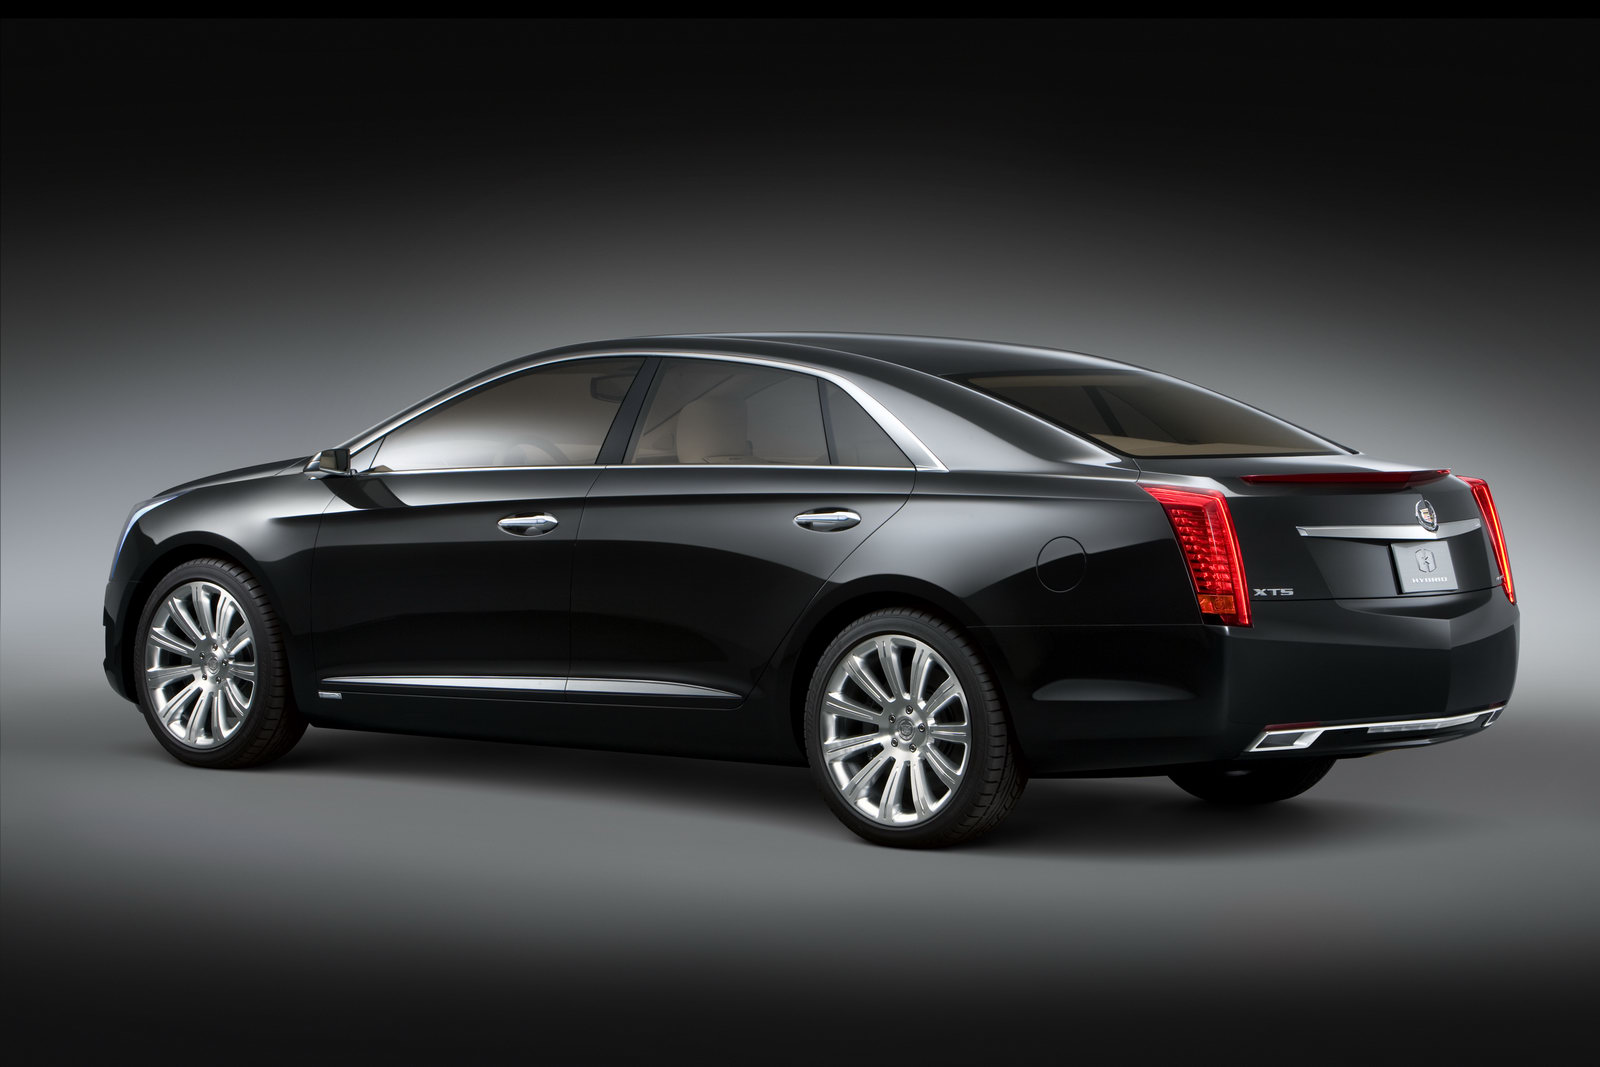 2013 CADILLAC XTS LUXURY SEDAN 5 GENERAL MOTORS TO INTRODUCE NEW CADILLAC XTS LUXURY SEDAN IN 2013